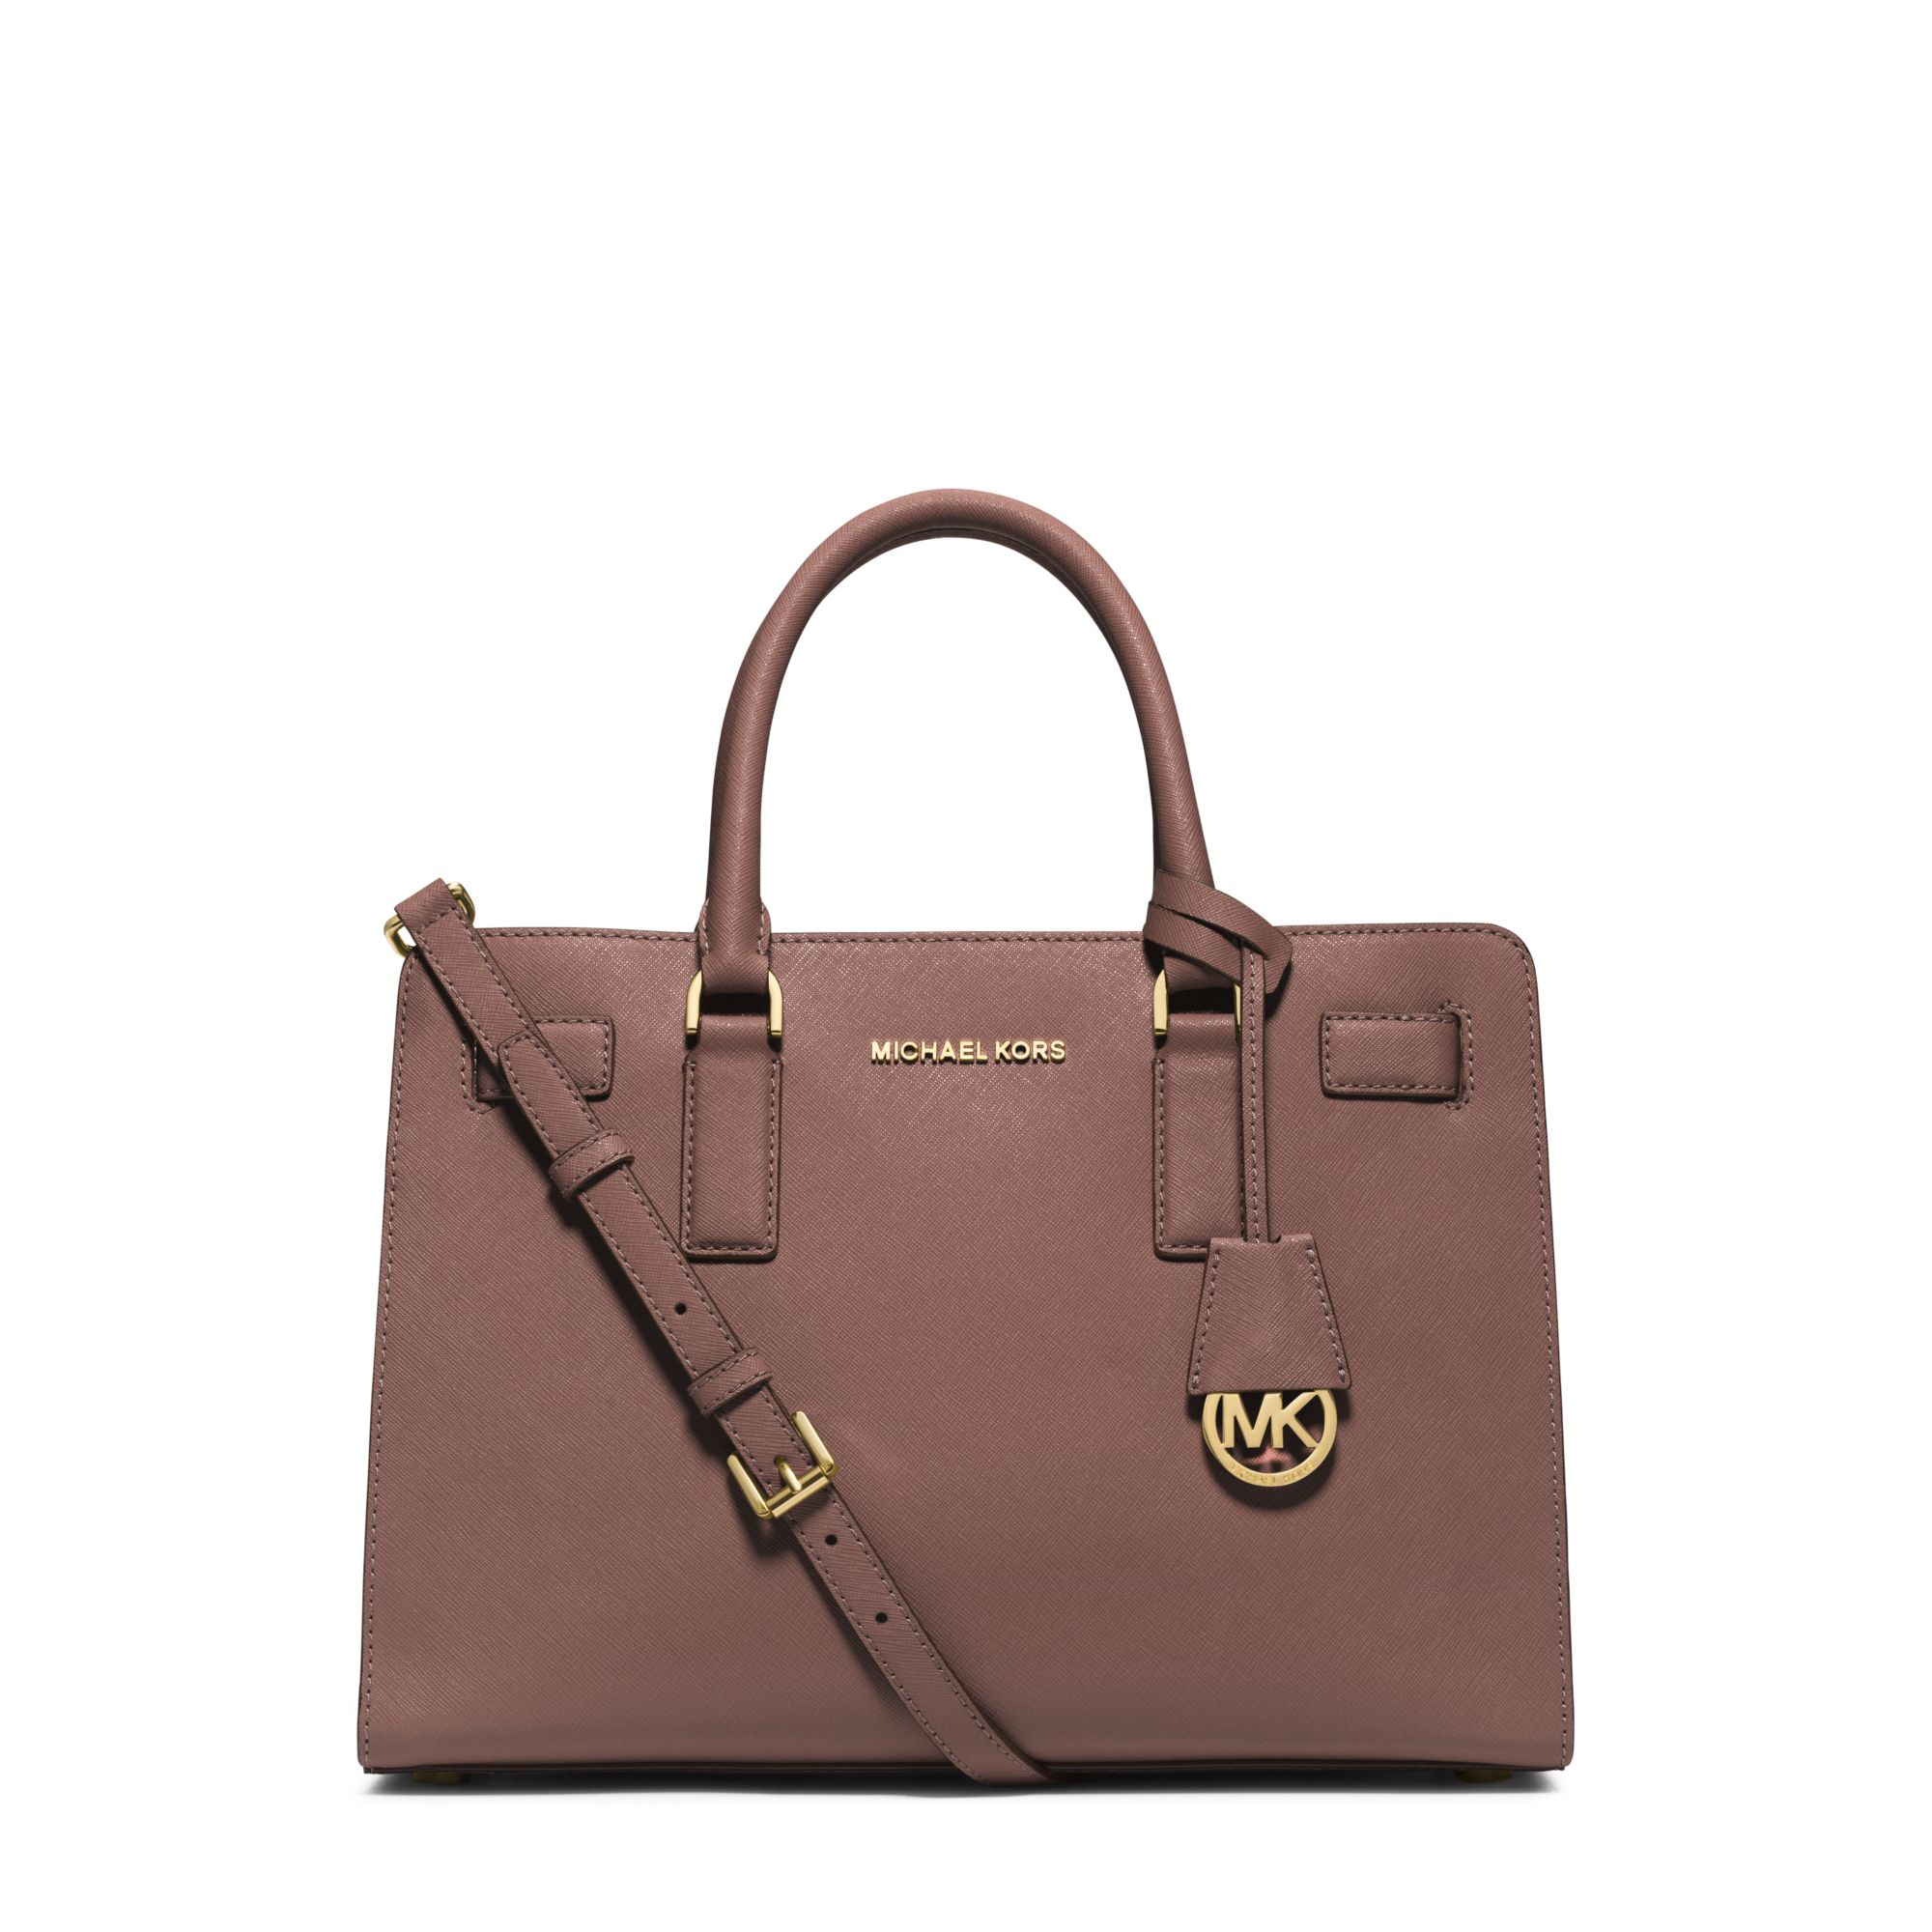 Michael Kors Laukkukoru : Michael kors dillon saffiano leather satchel in pink lyst